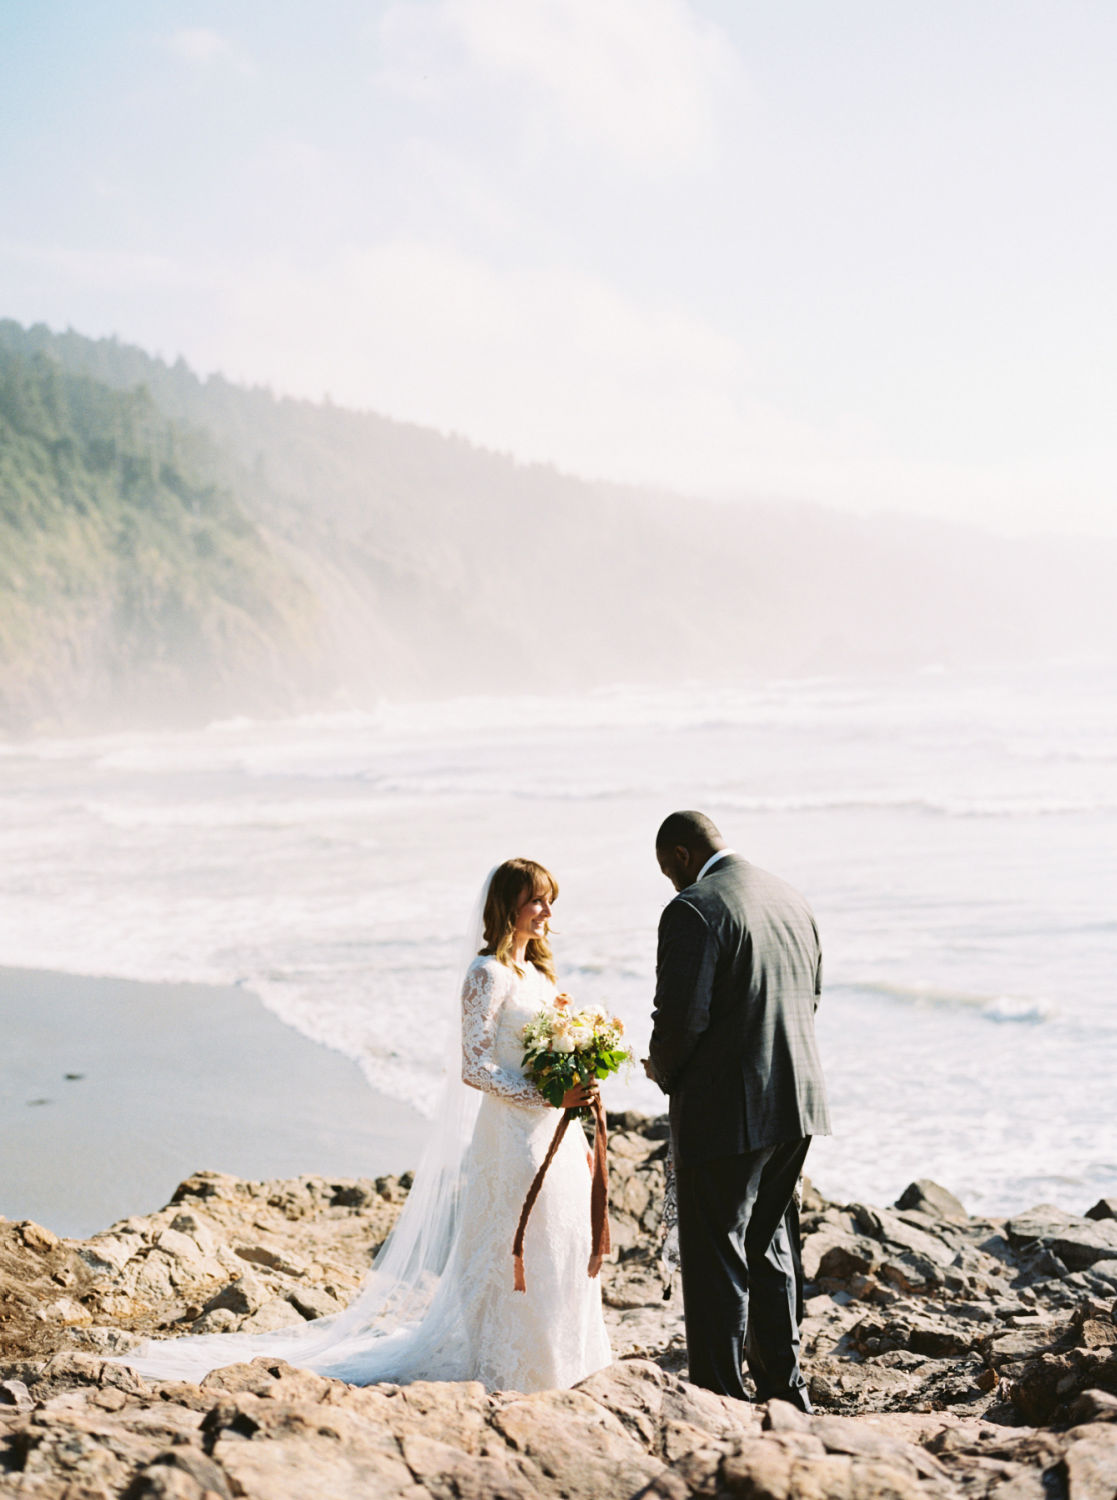 oregon coast elopement shot on film by Justin Douglas Photography